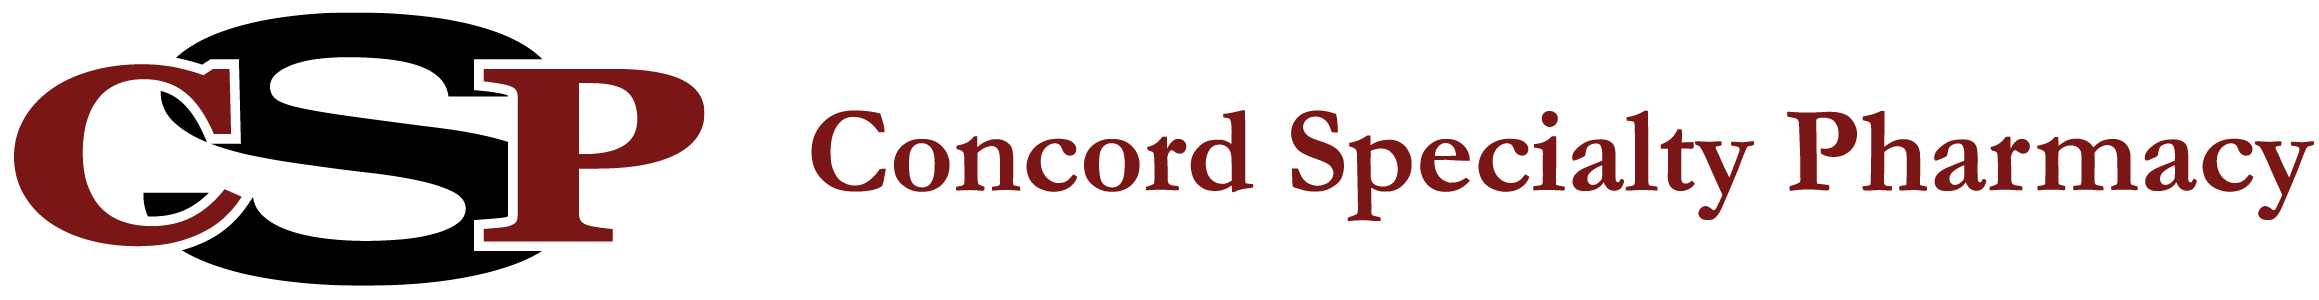 Concord Special Pharmacy